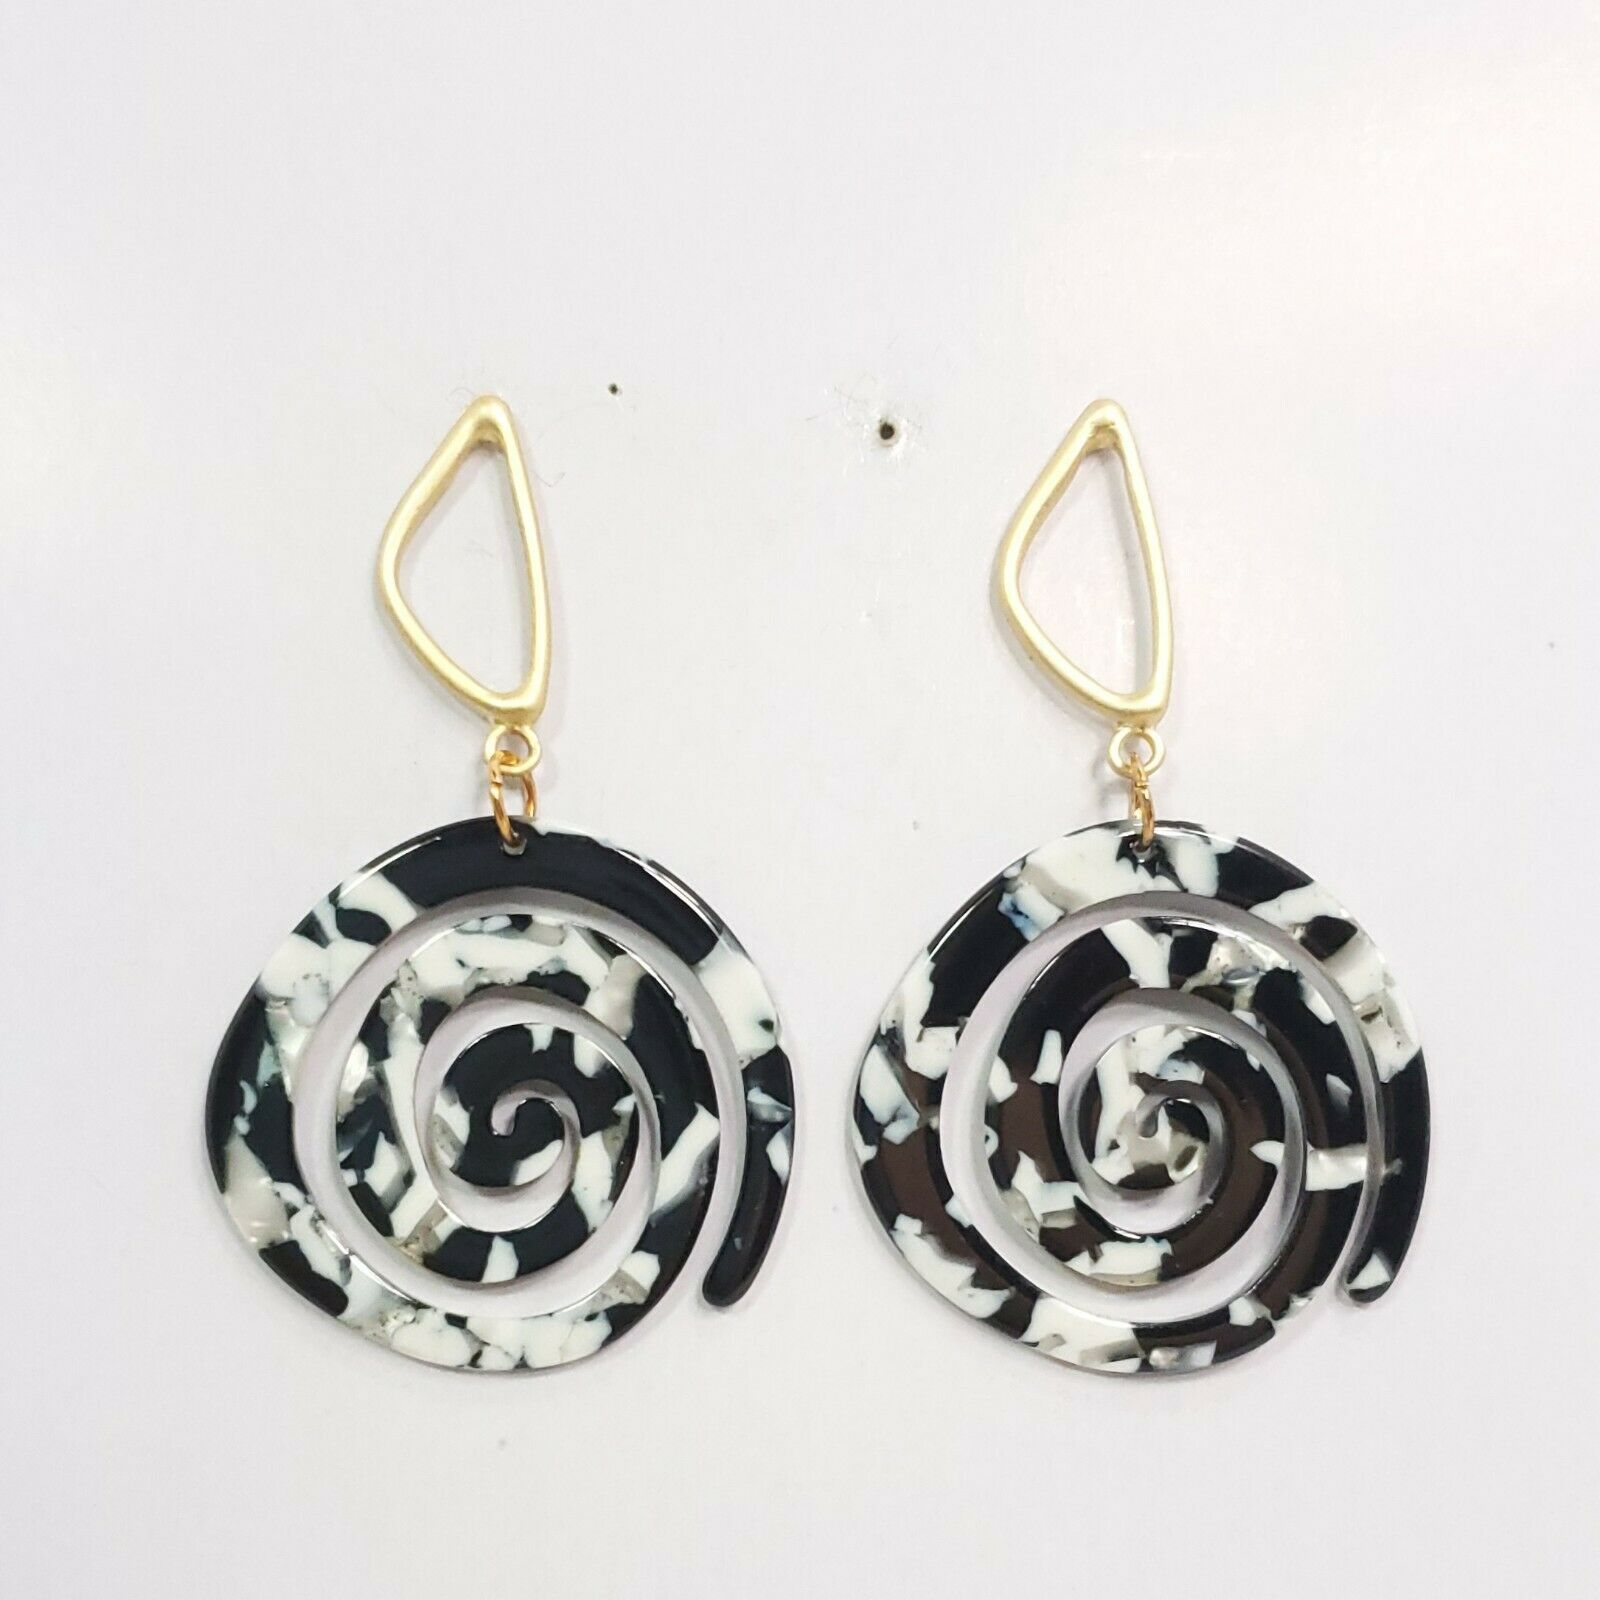 Primary image for E0270 Black Tone Acrylic Circle Spiral Design Drop Dangle Fashion Post Earrings